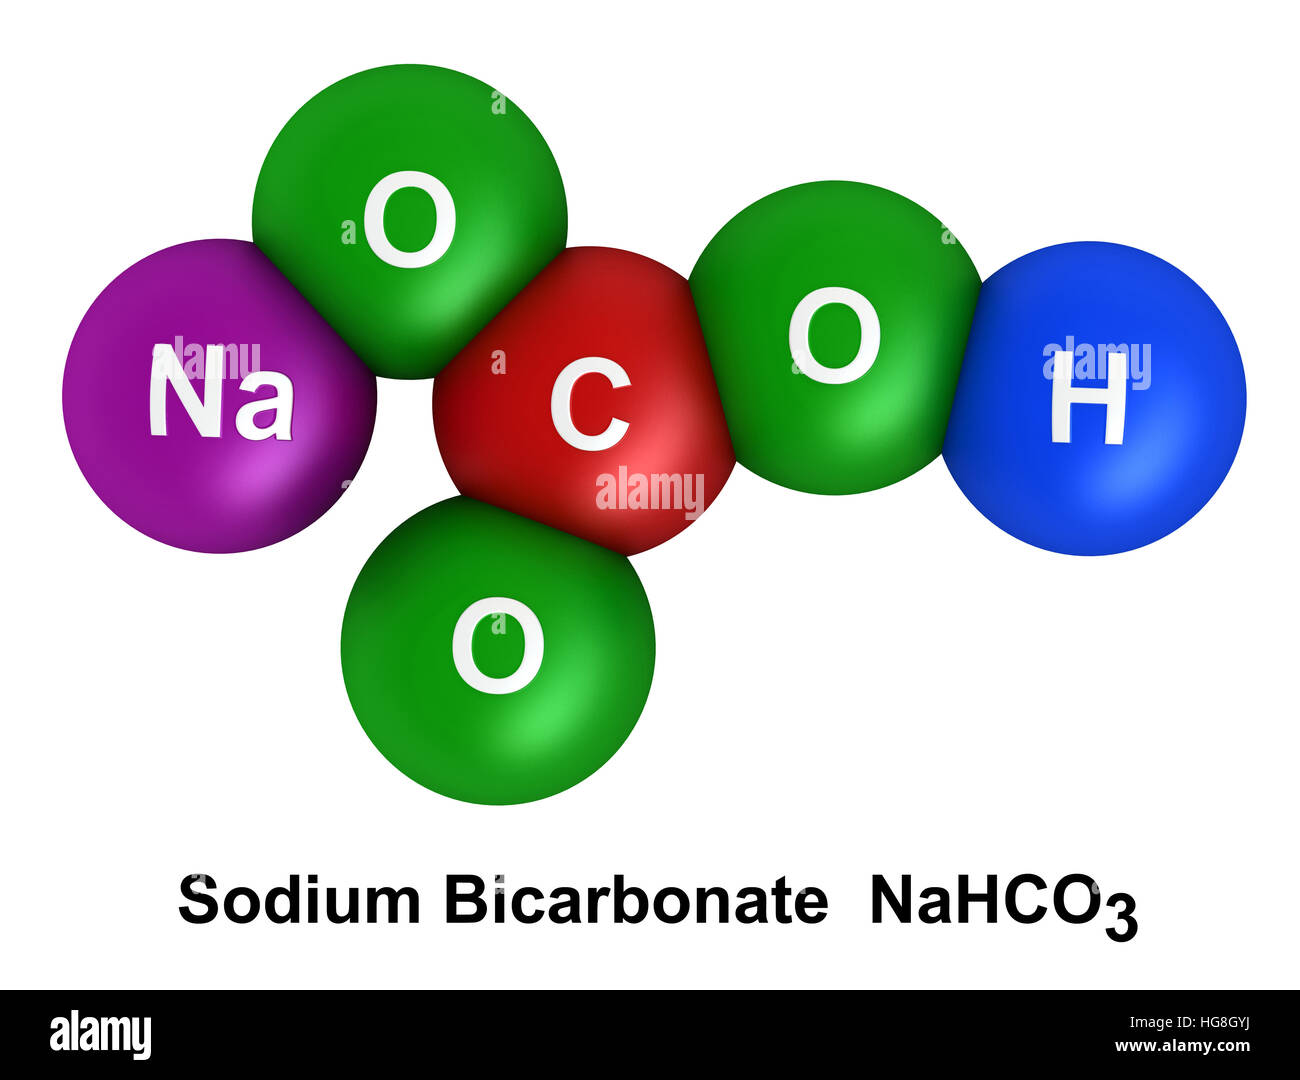 sodium atom diagram electrical wiring diagrams symbols 3d render of molecular structure bicarbonate